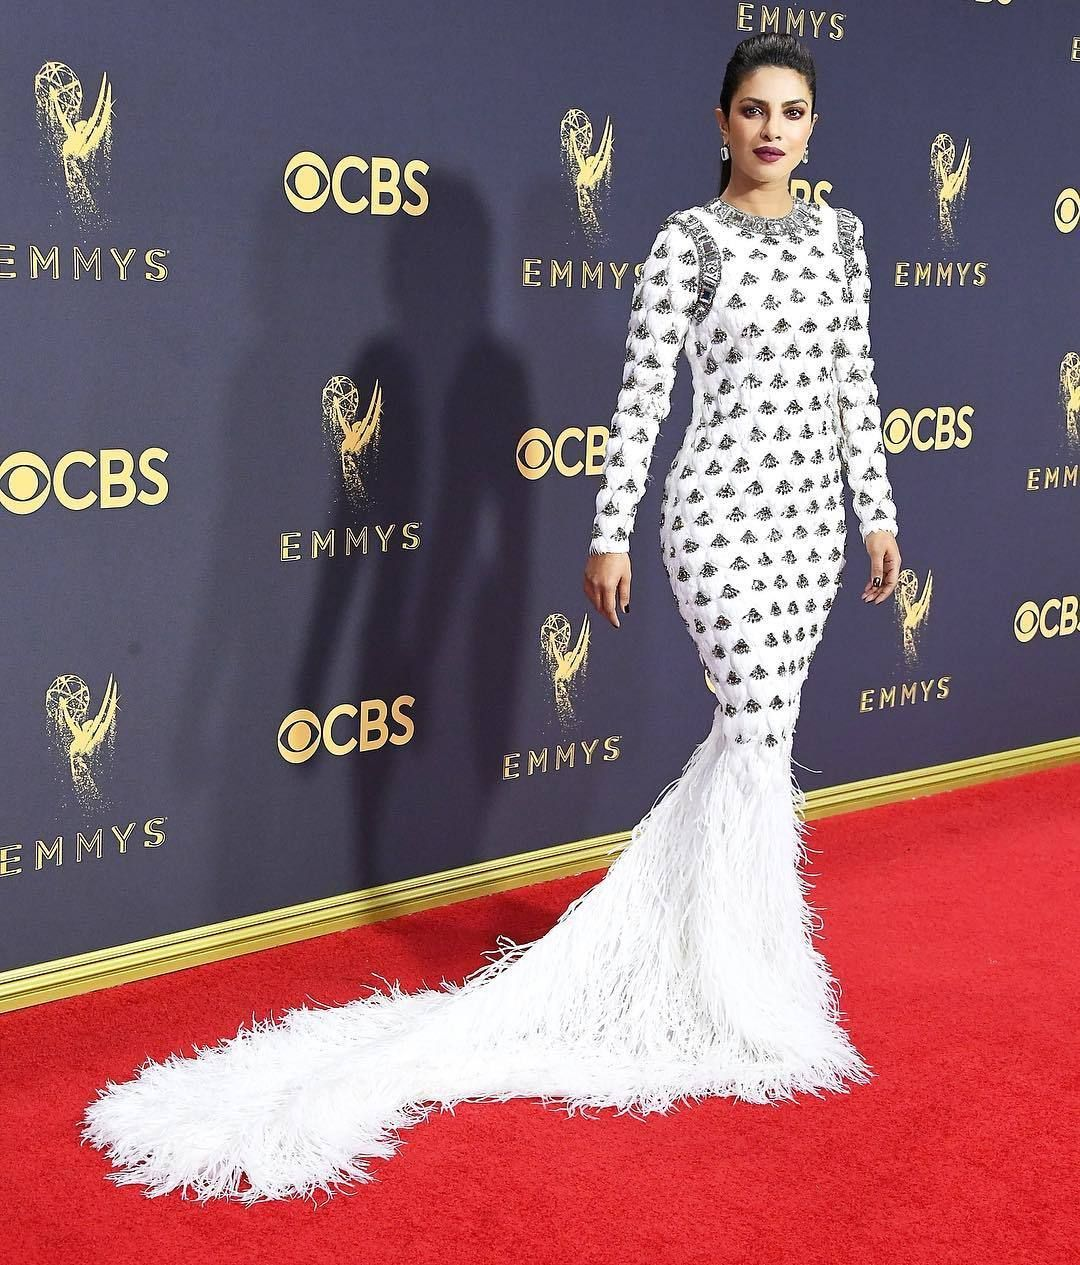 Priyanka Chopra at Emmys 2017 | exquisite pc | Pinterest